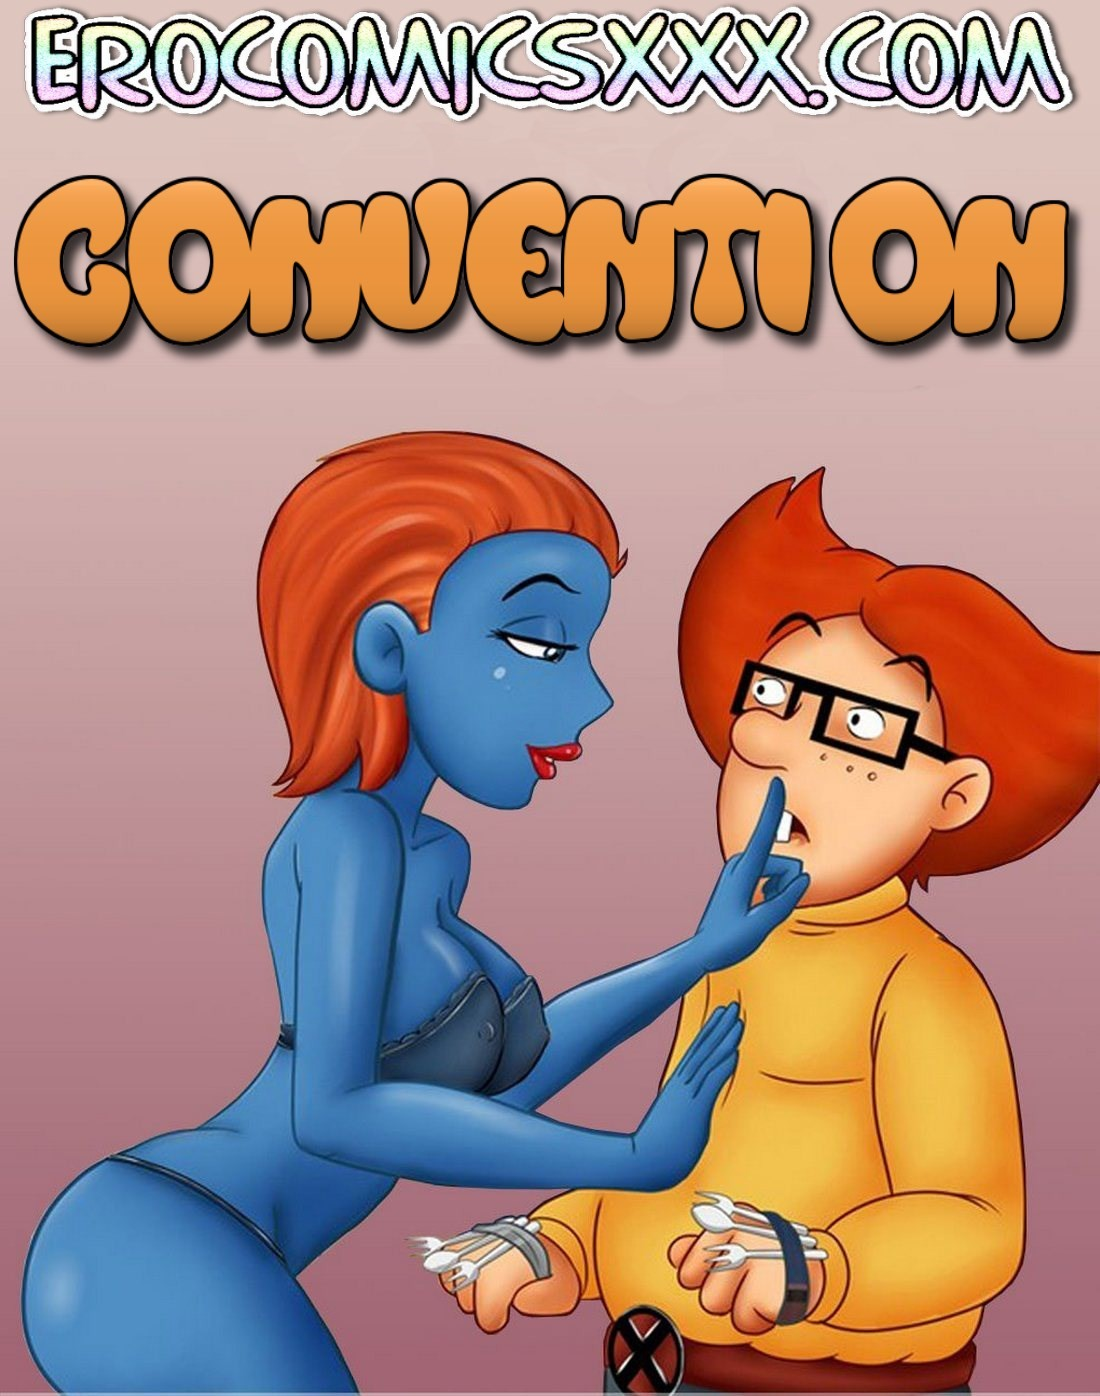 porn comics convention